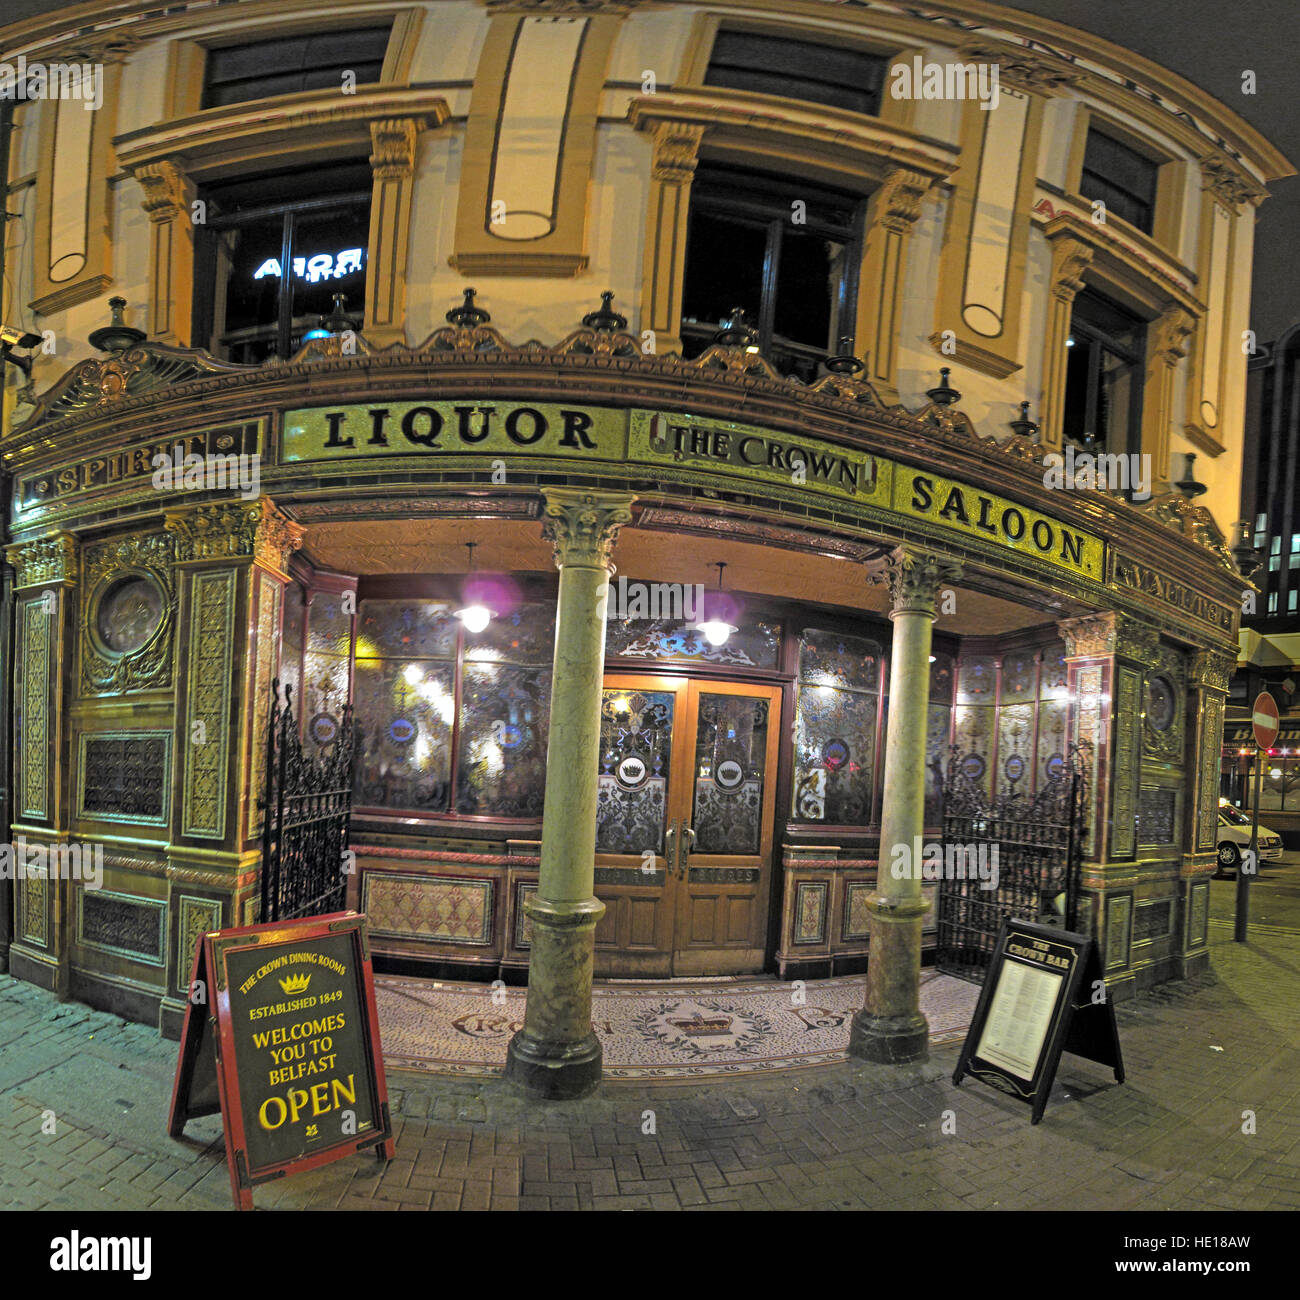 Great,Street,bars,beer,pub,public,house,interior,exterior,historic,history,gin,palace,Victoriana,Liquor,Saloon,Liquor Saloon,National Trust,great,lounge,famous,Crown Bar,unique,BT2,Felix OHanlon,Tavern,outside,dusk,night shot,shot,dusk shot,Irish Pub,GoTonySmith,@HotpixUK,Tony,Smith,UK,GB,Great,Britain,United,Kingdom,Irish,British,Ireland,problem,with,problem with,issue with,NI,Northern,Northern Ireland,Belfast,City,Centre,Art,Artists,the,troubles,The Troubles,Good Friday Agreement,Peace,honour,painting,wall,walls,tribute,republicanism,Fight,Justice,West,Beal,feirste,martyrs,social,tour,tourism,tourists,urban,six,counties,6,backdrop,county,Antrim,boozer,Real Ale,Real,Ale,CAMRA,beer,beers,Buy Pictures of,Buy Images Of,Images of,Stock Images,Tony Smith,United Kingdom,Great Britain,British Isles